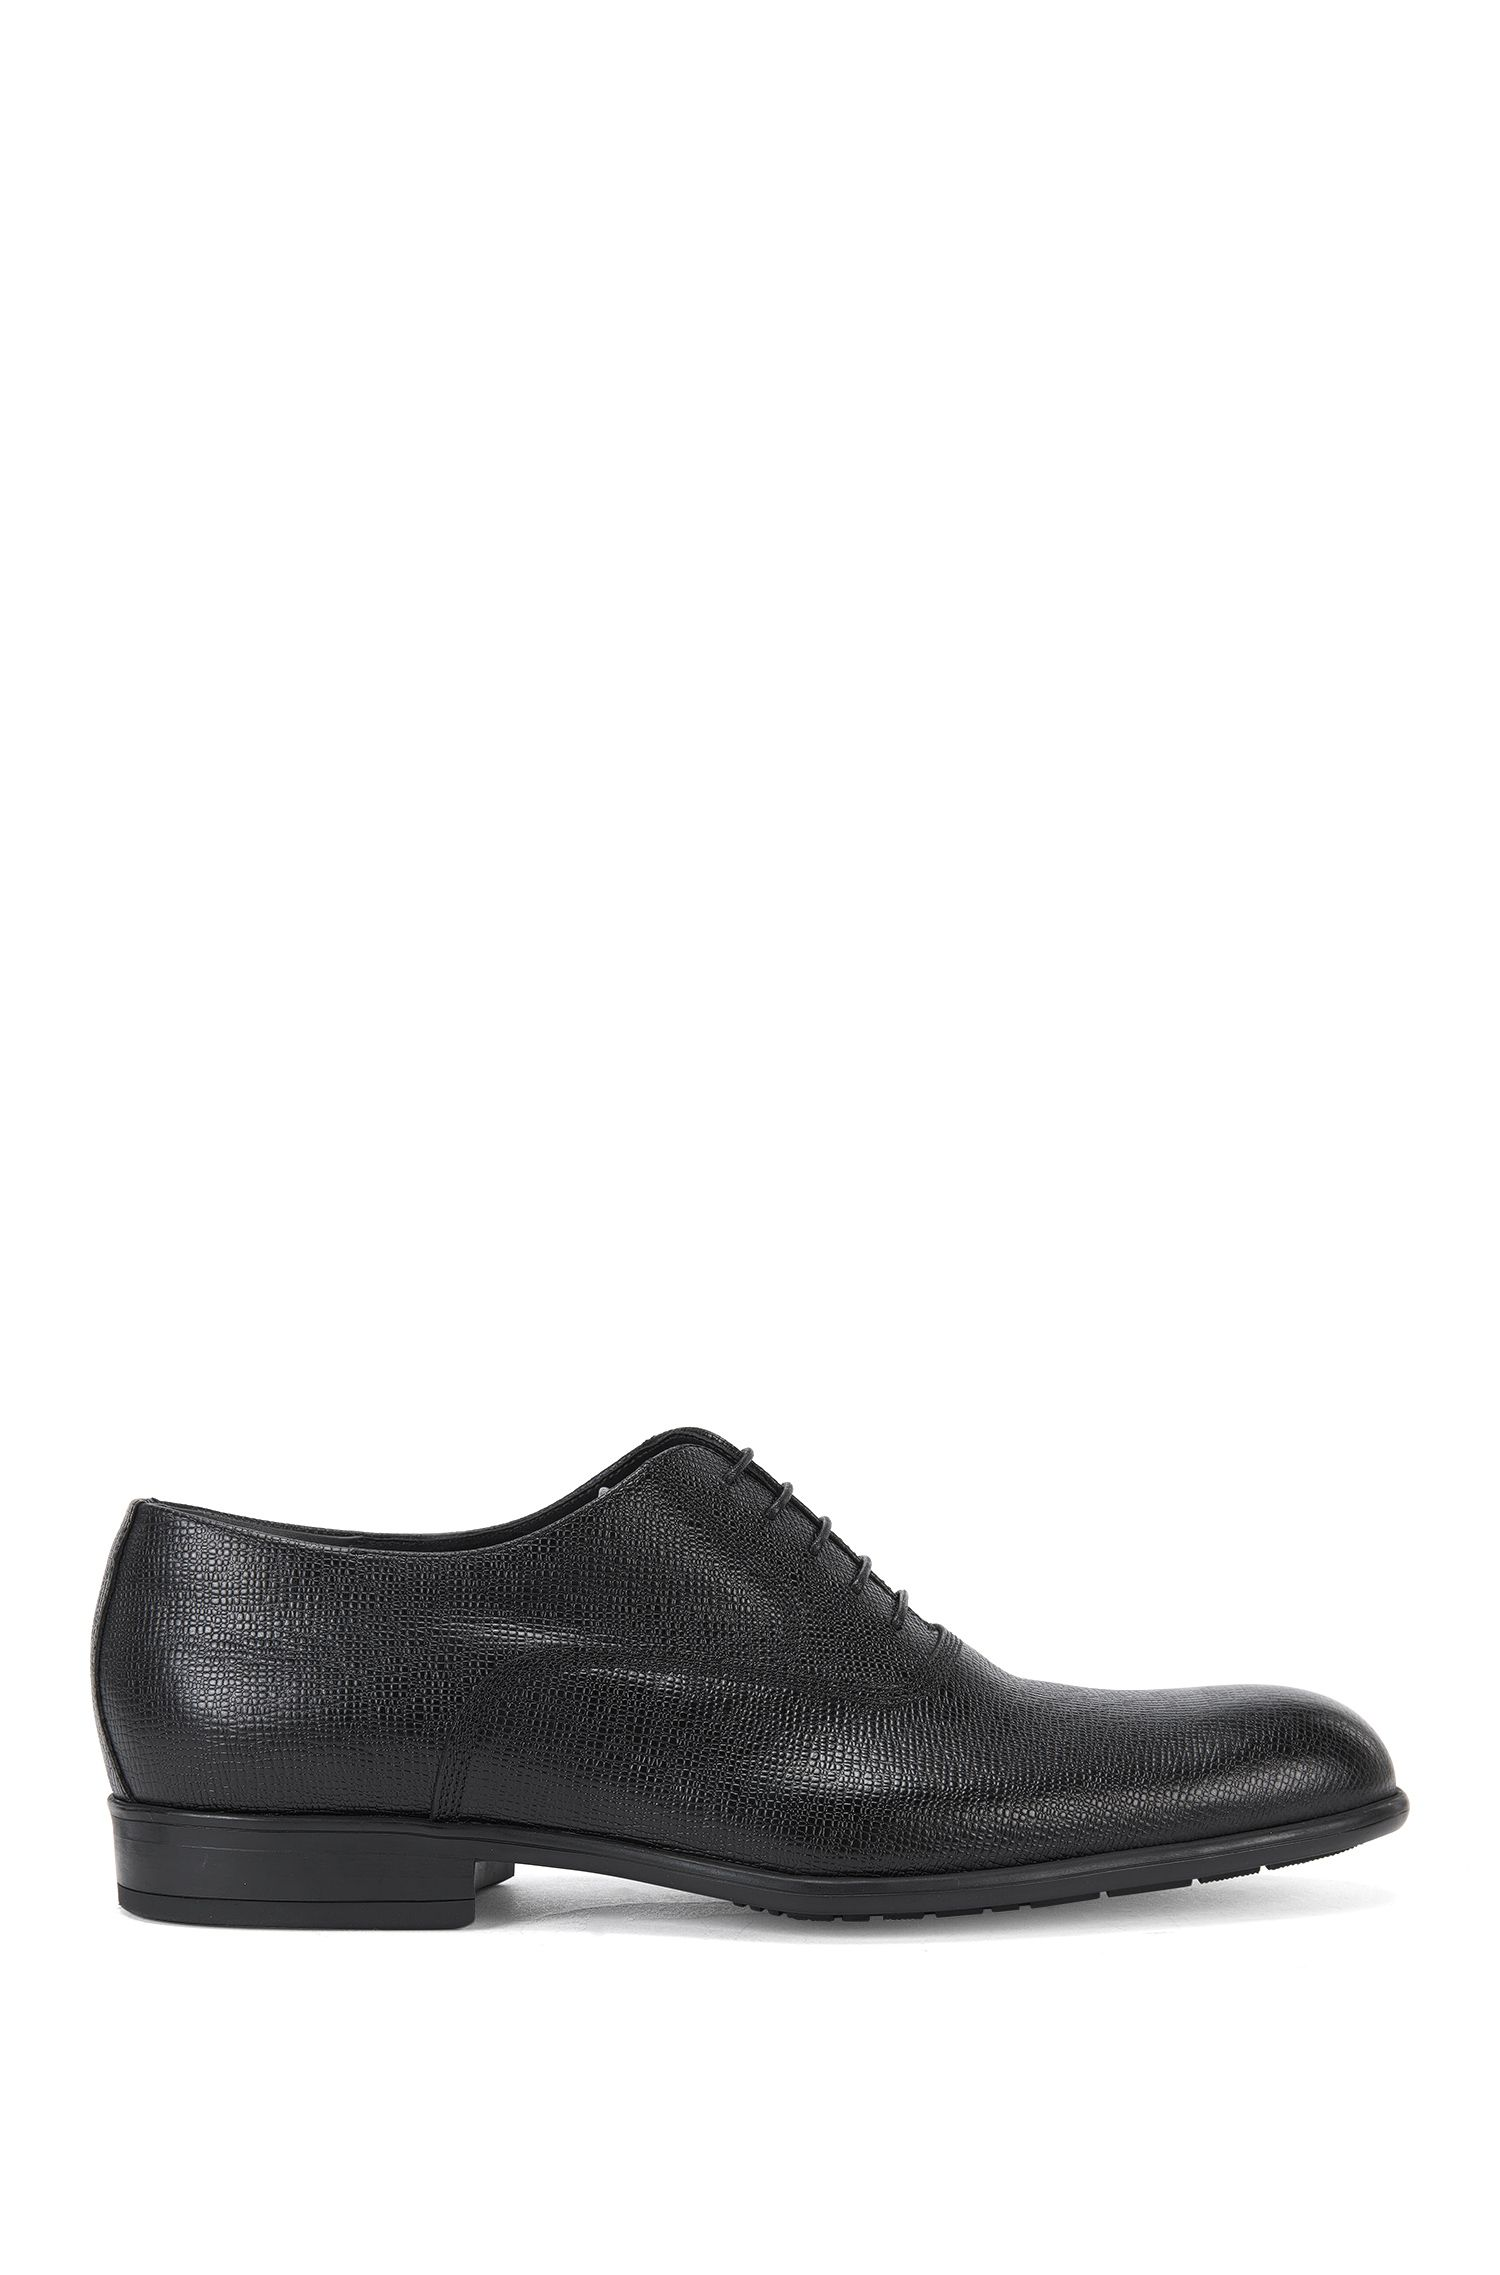 Lace-up shoes in embossed leather: 'Gentleman_Oxfr_pr'